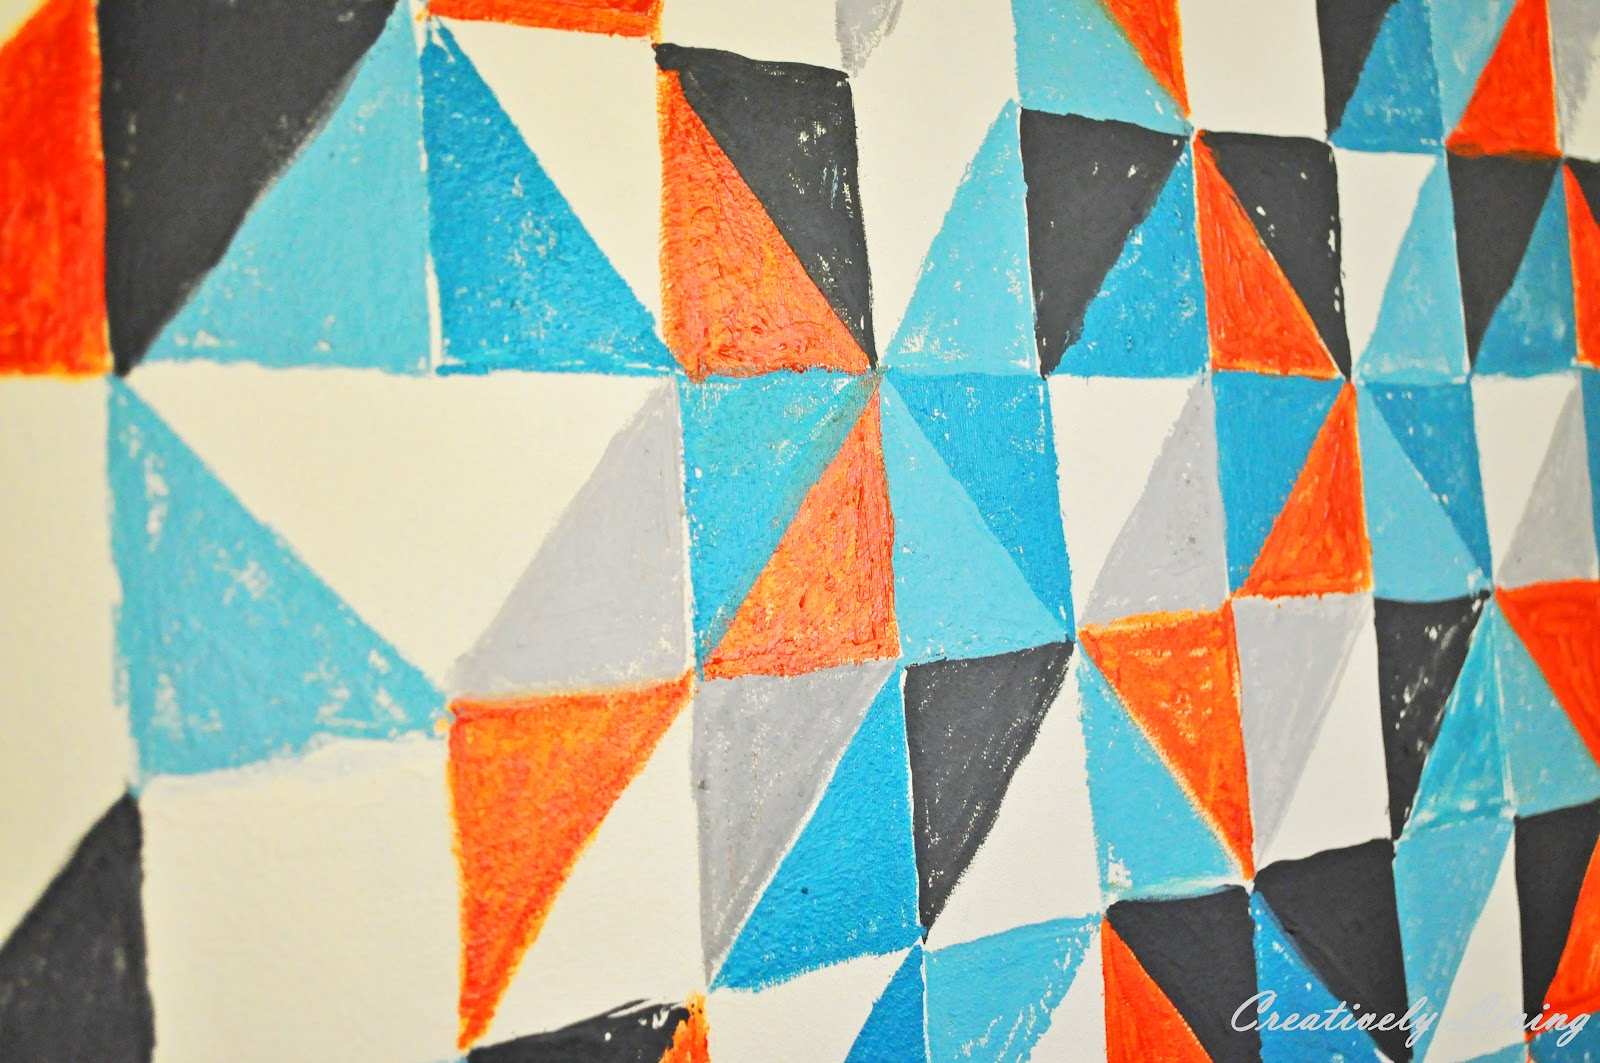 Geometric Wall Art diy geometric wall art (nursery project #1) - creatively living blog